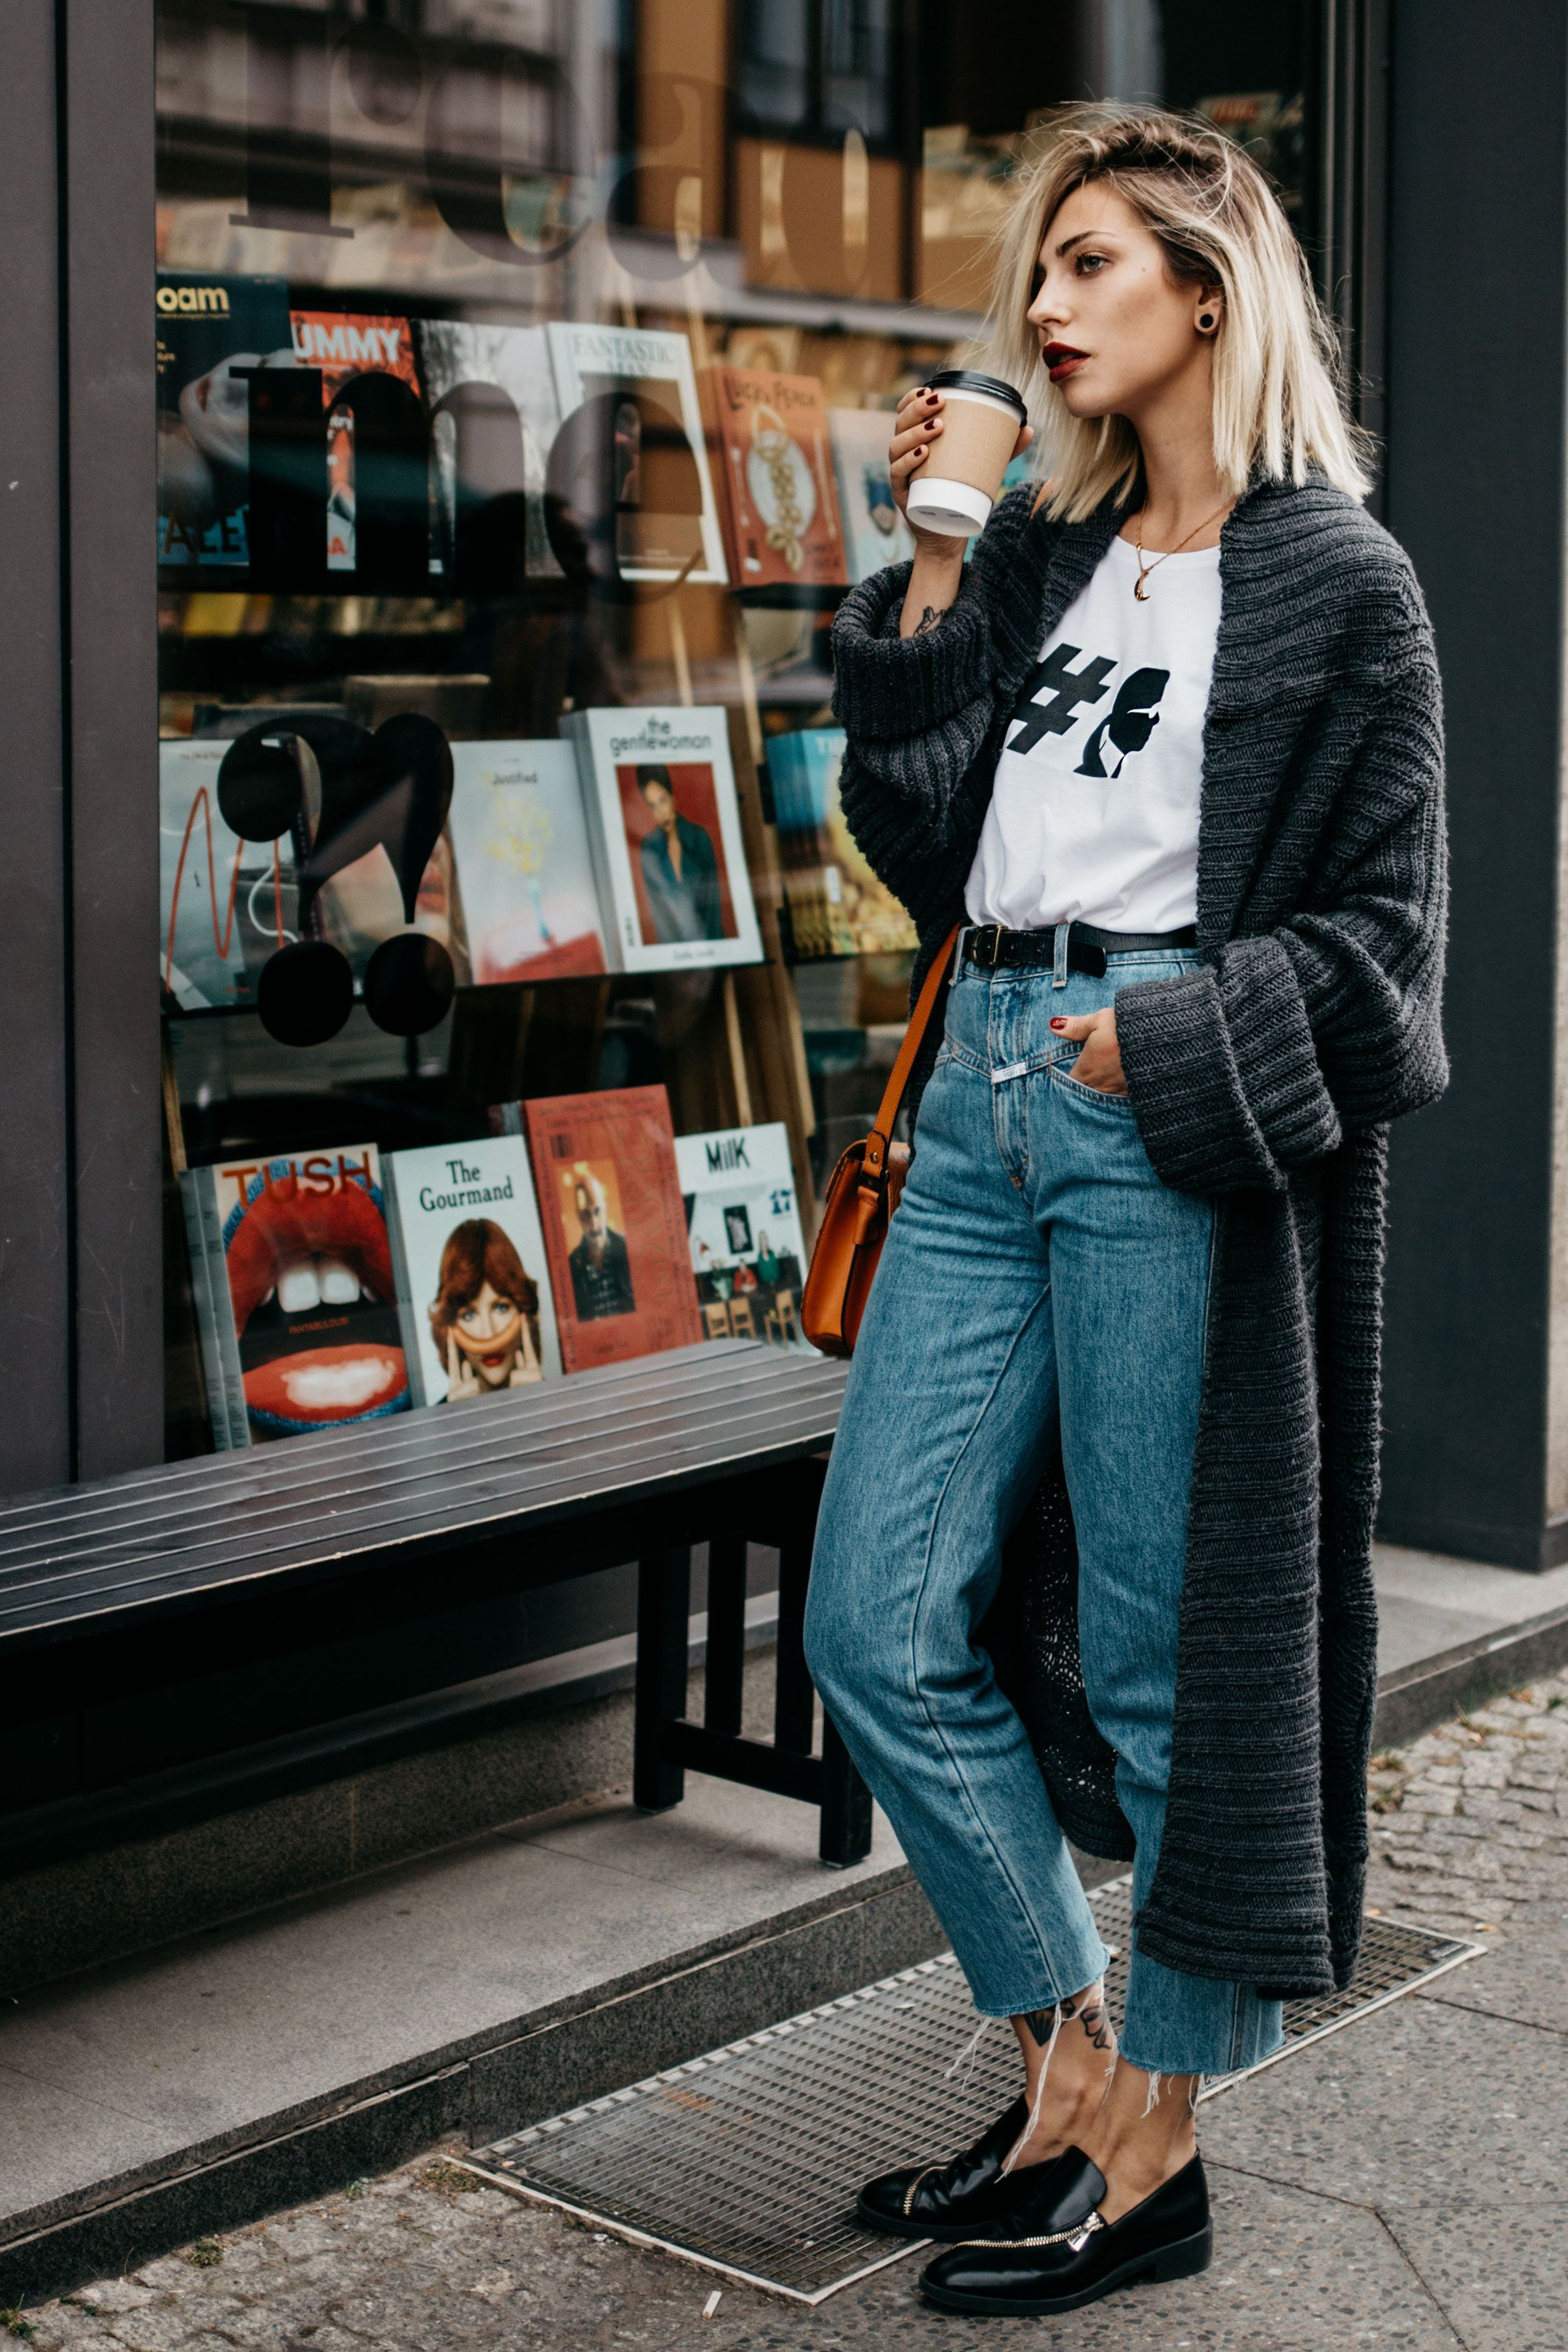 Black t shirt outfit - White Tee With Funky Slogan Paired With Cable Knit Cardi Boy Friend Jeans And Loafers For A Relaxed Look With Attitude